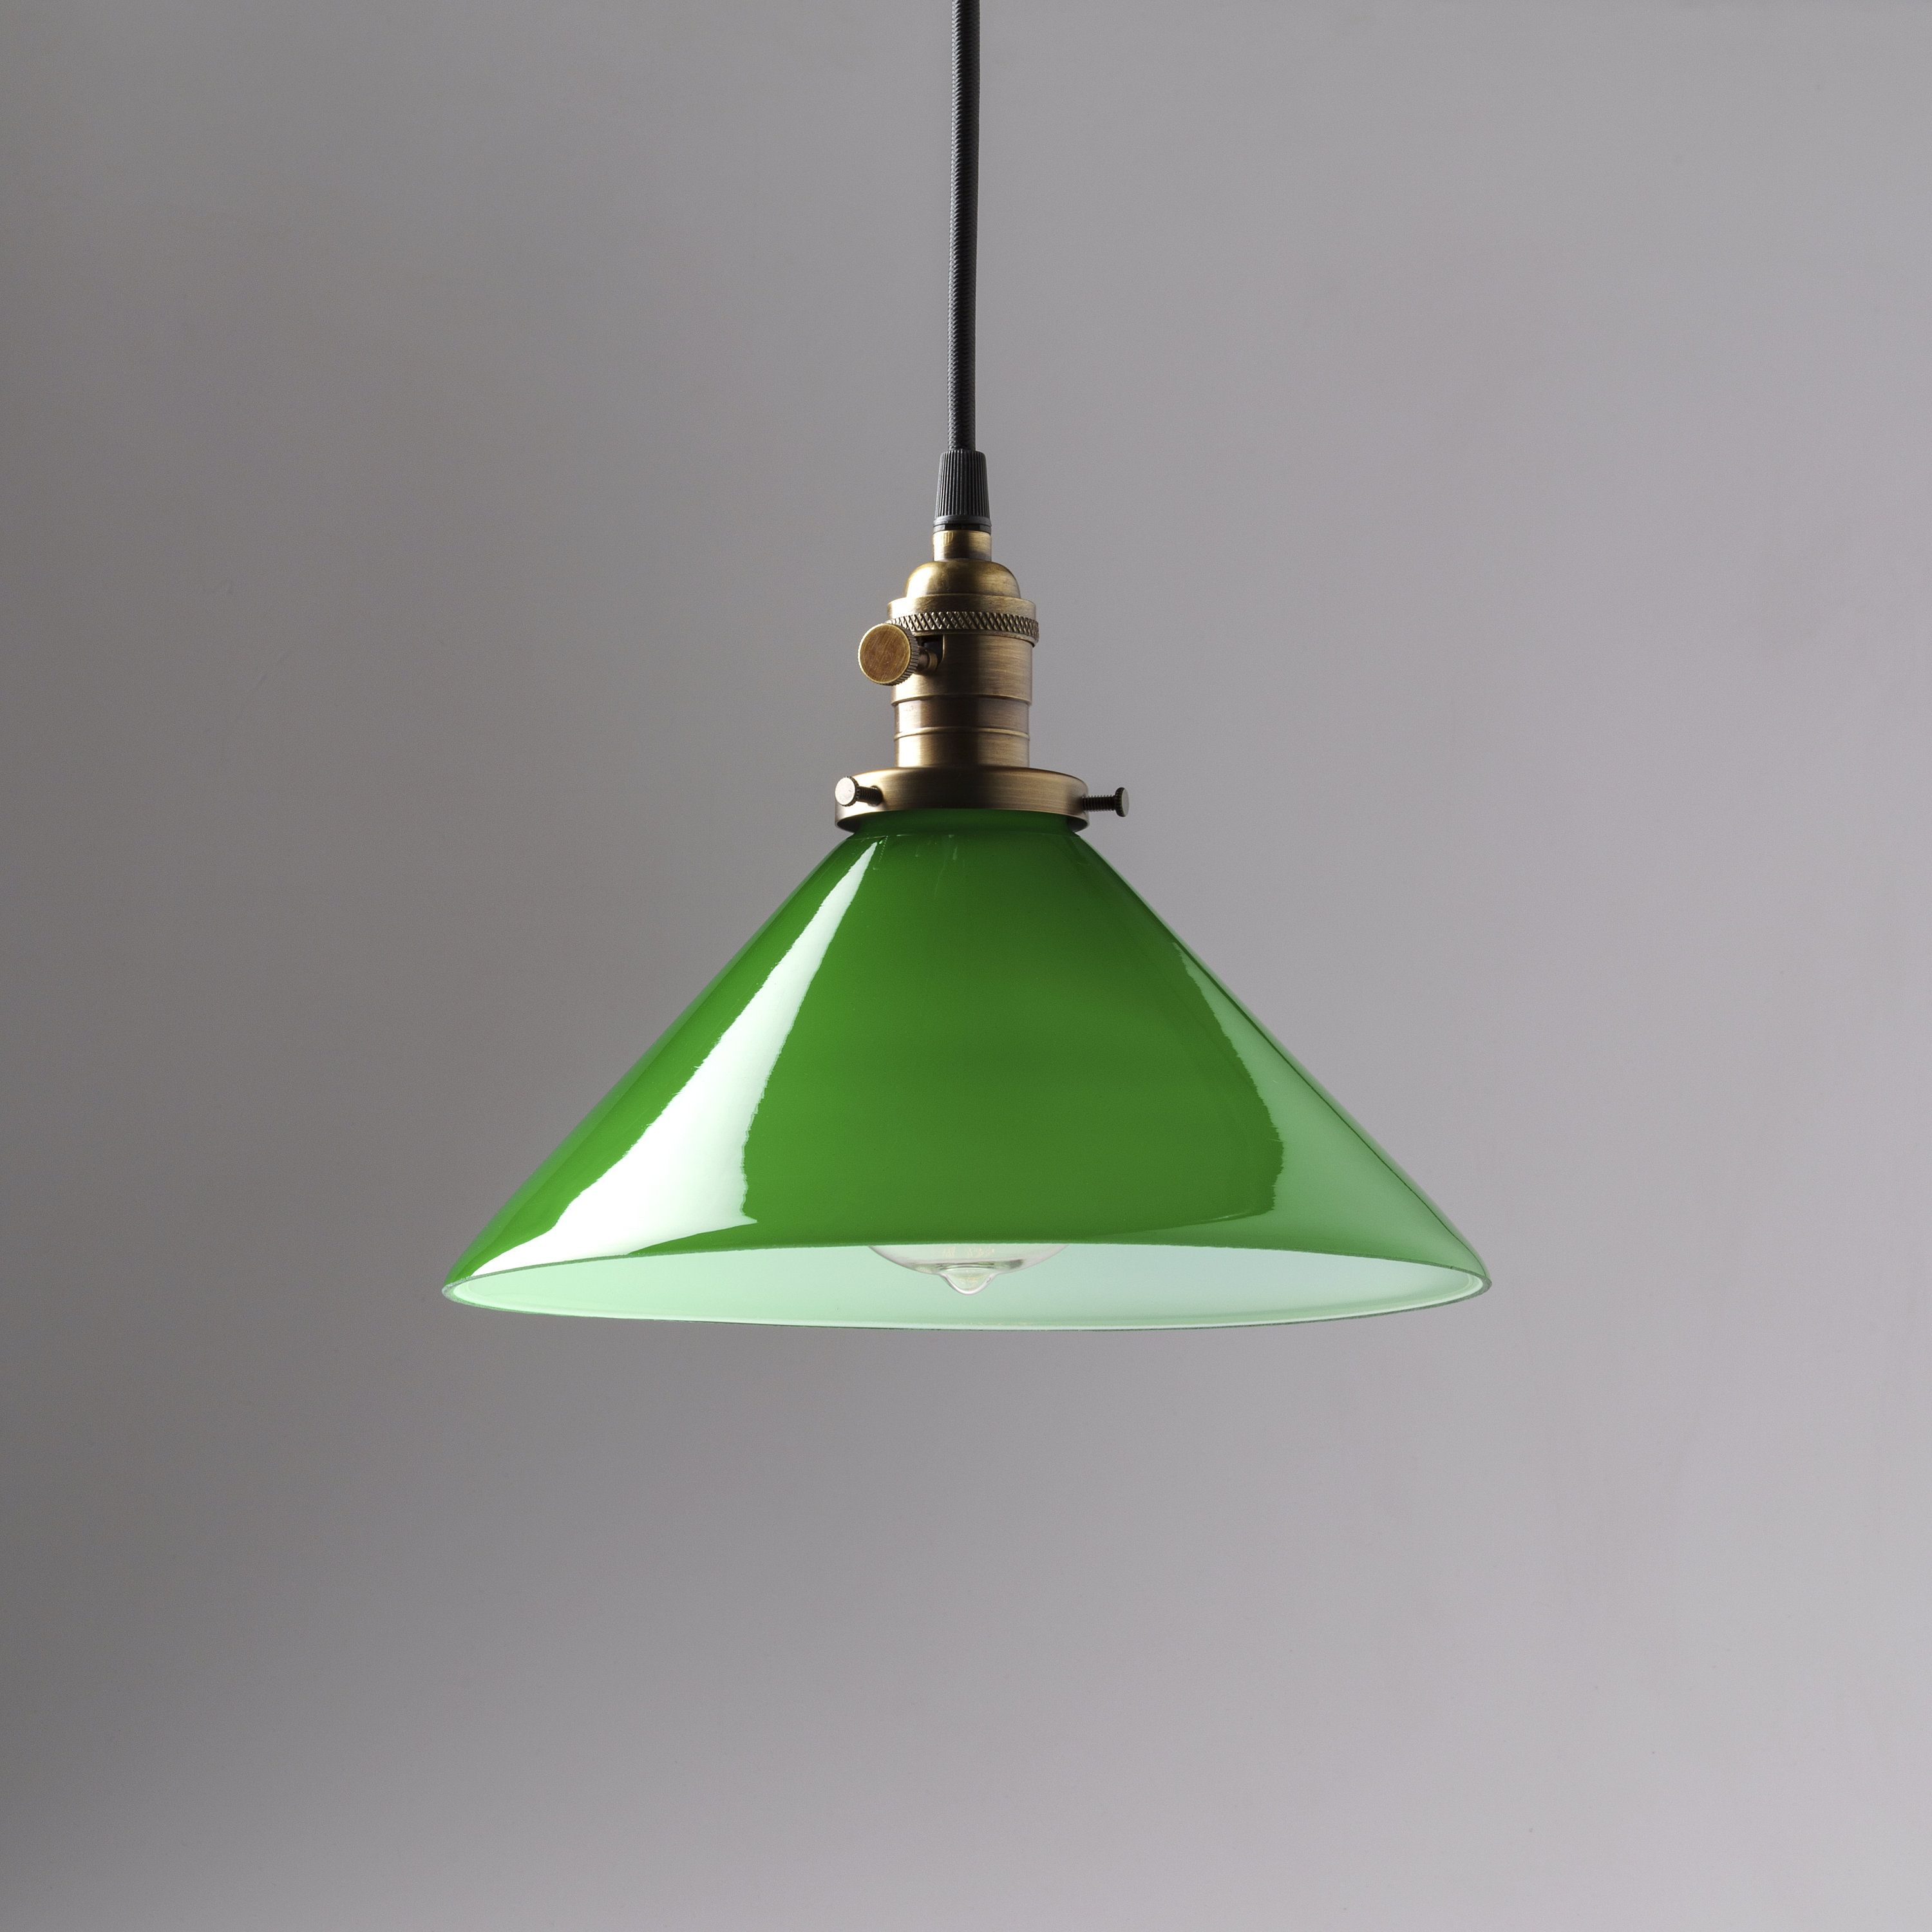 Pendant Light Fixture Green Glass Cone Shade 10 Glass Etsy Pendant Light Fixtures Pendant Light Unusual Lamps